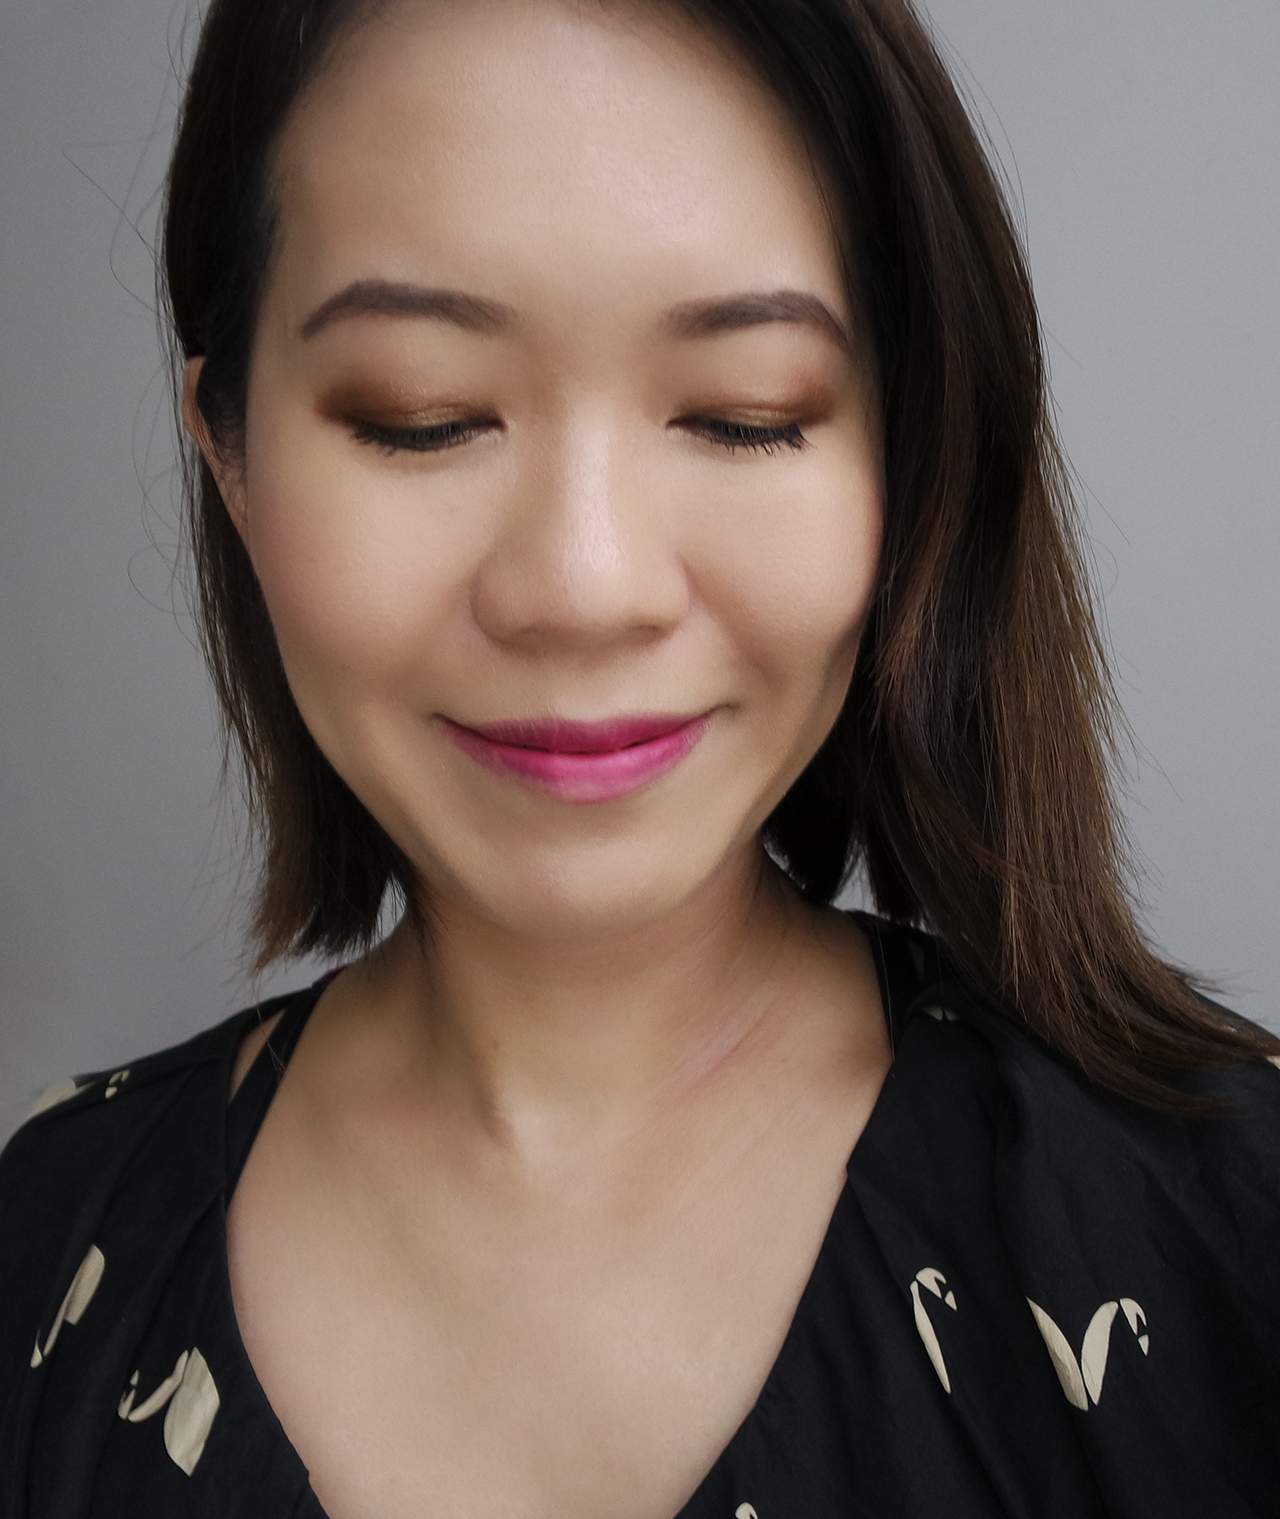 Pixi Pretties Dulce Candy makeup look